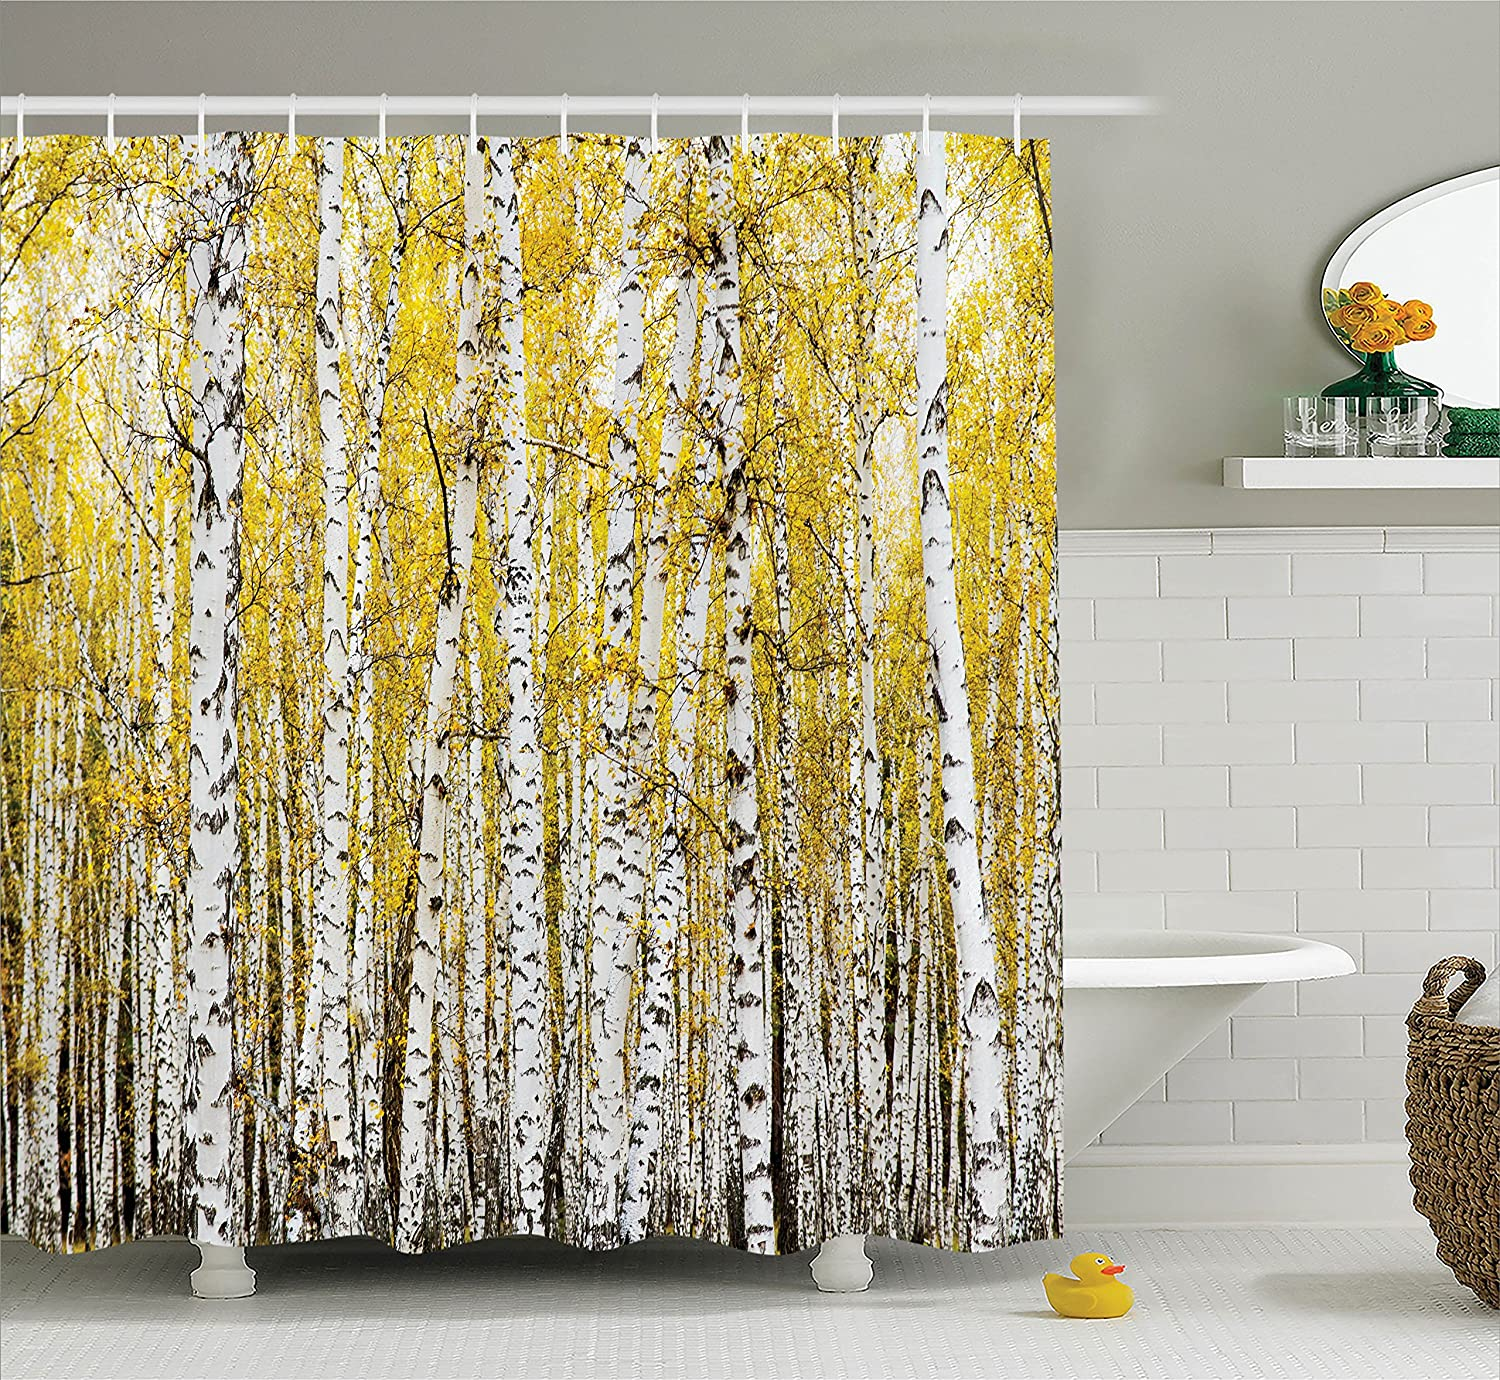 Ambesonne Forest Shower Curtain Autumn Birch Golden Yellow Leaves Woodland October Seasonal Nature Picture Fabric Bathroom Decor Set With Hooks